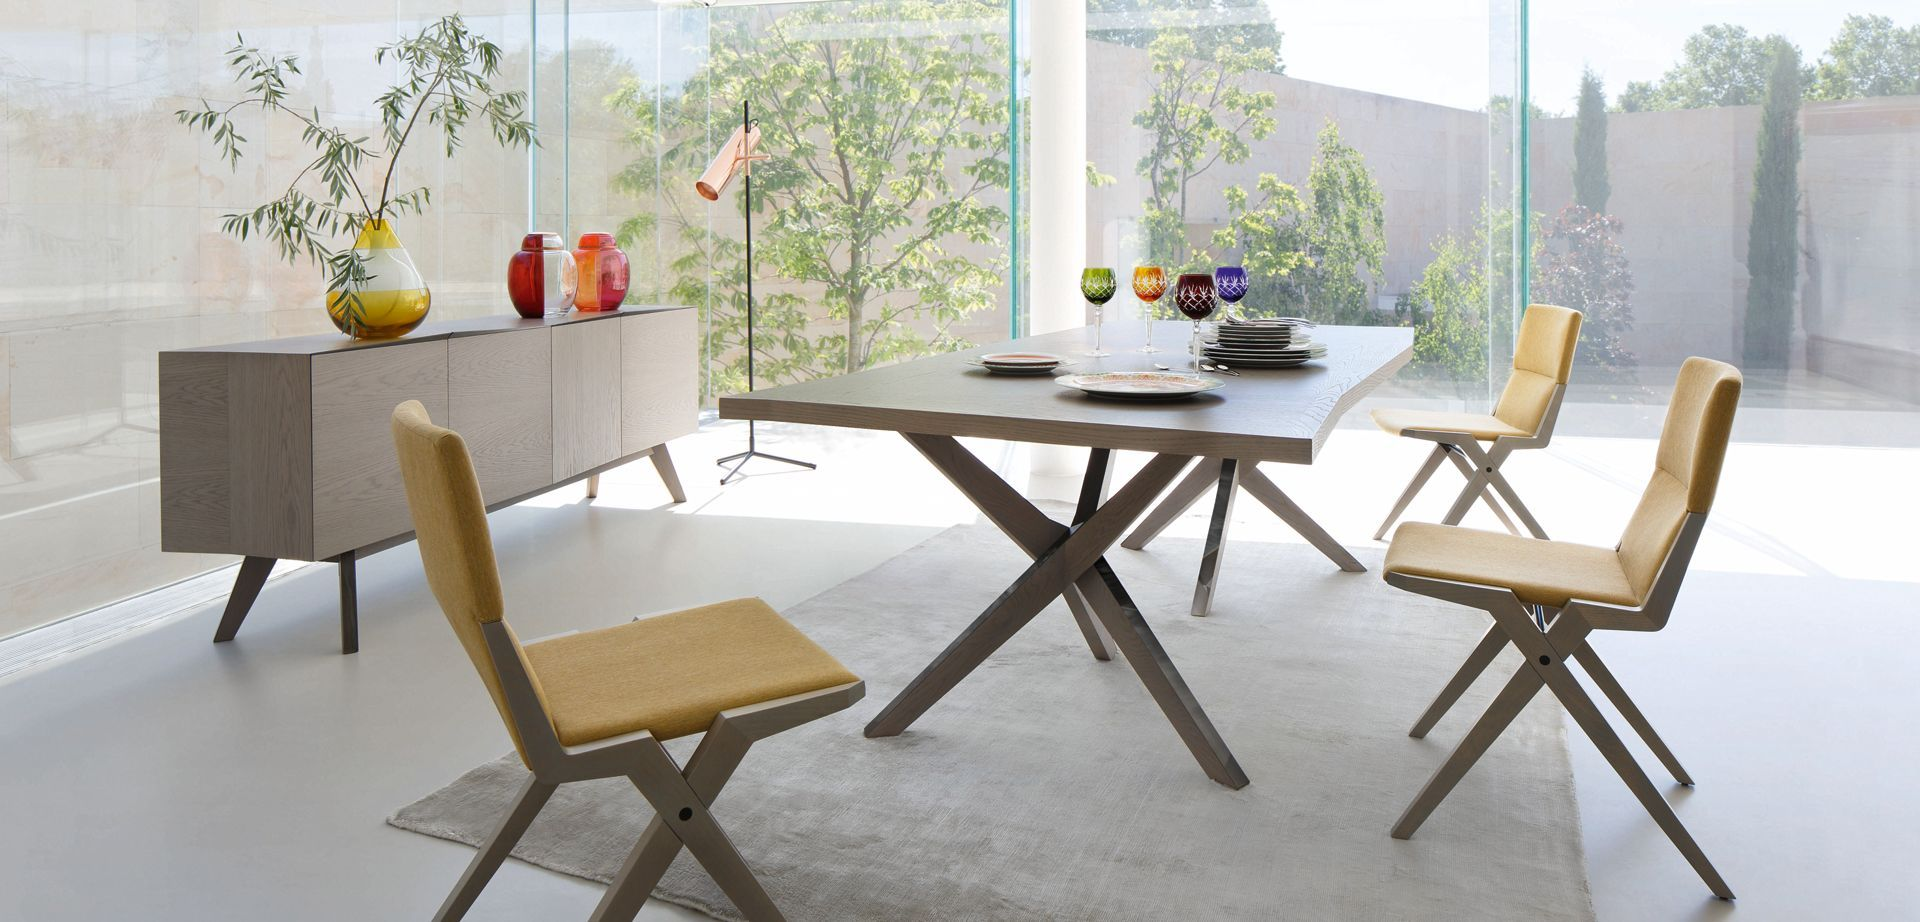 JANE Dining table Dining table, Dining table design, Table